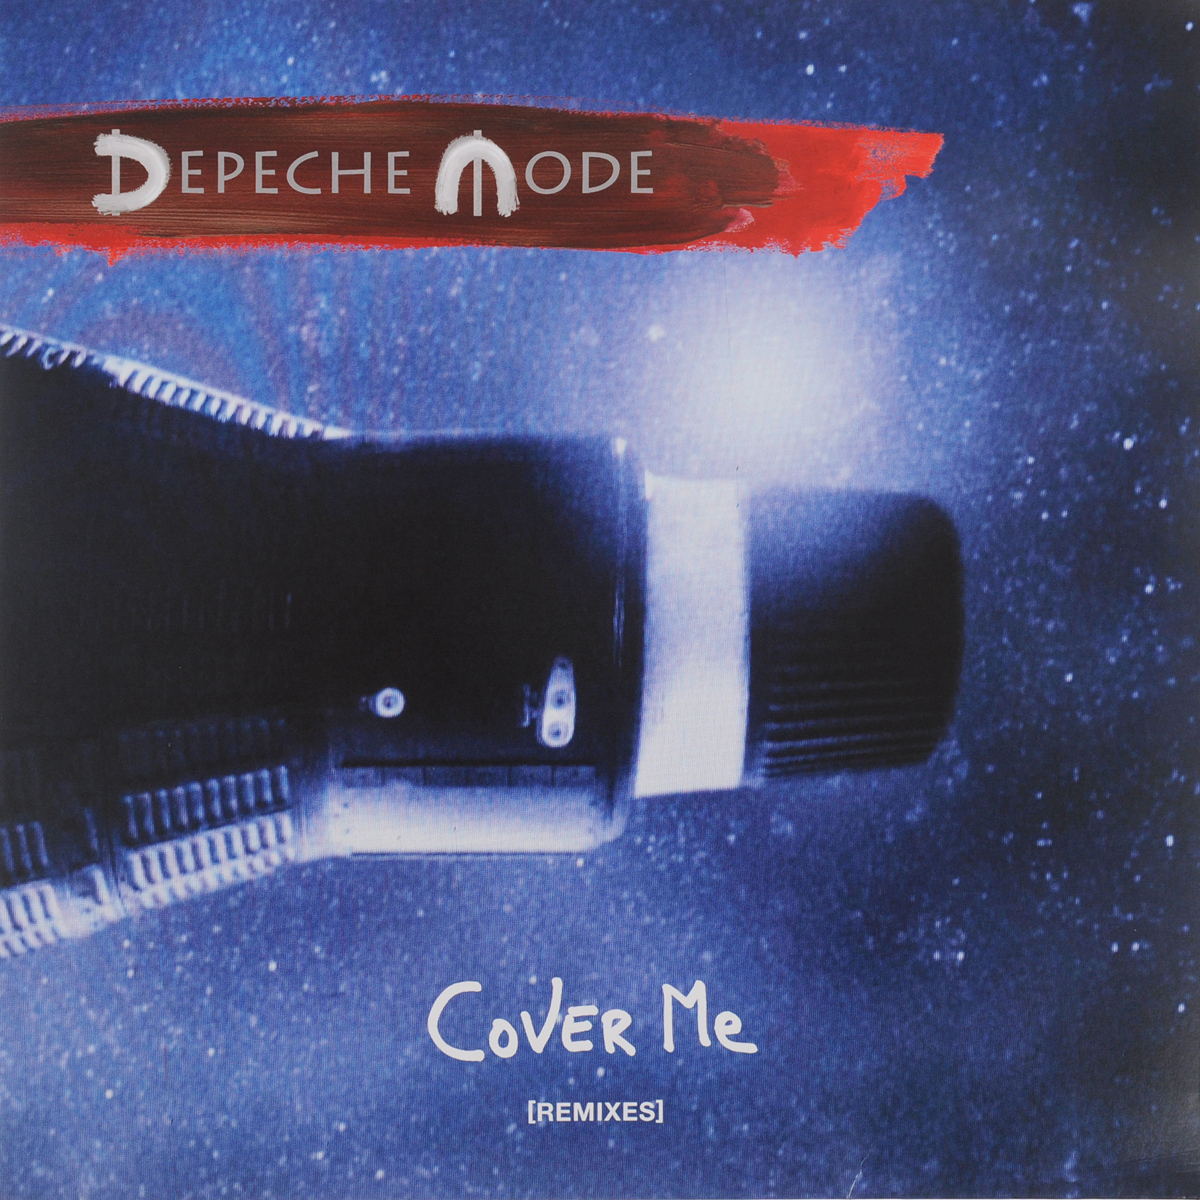 цена на Depeche Mode Depeche Mode. Cover Me (Remixes) (2 LP)